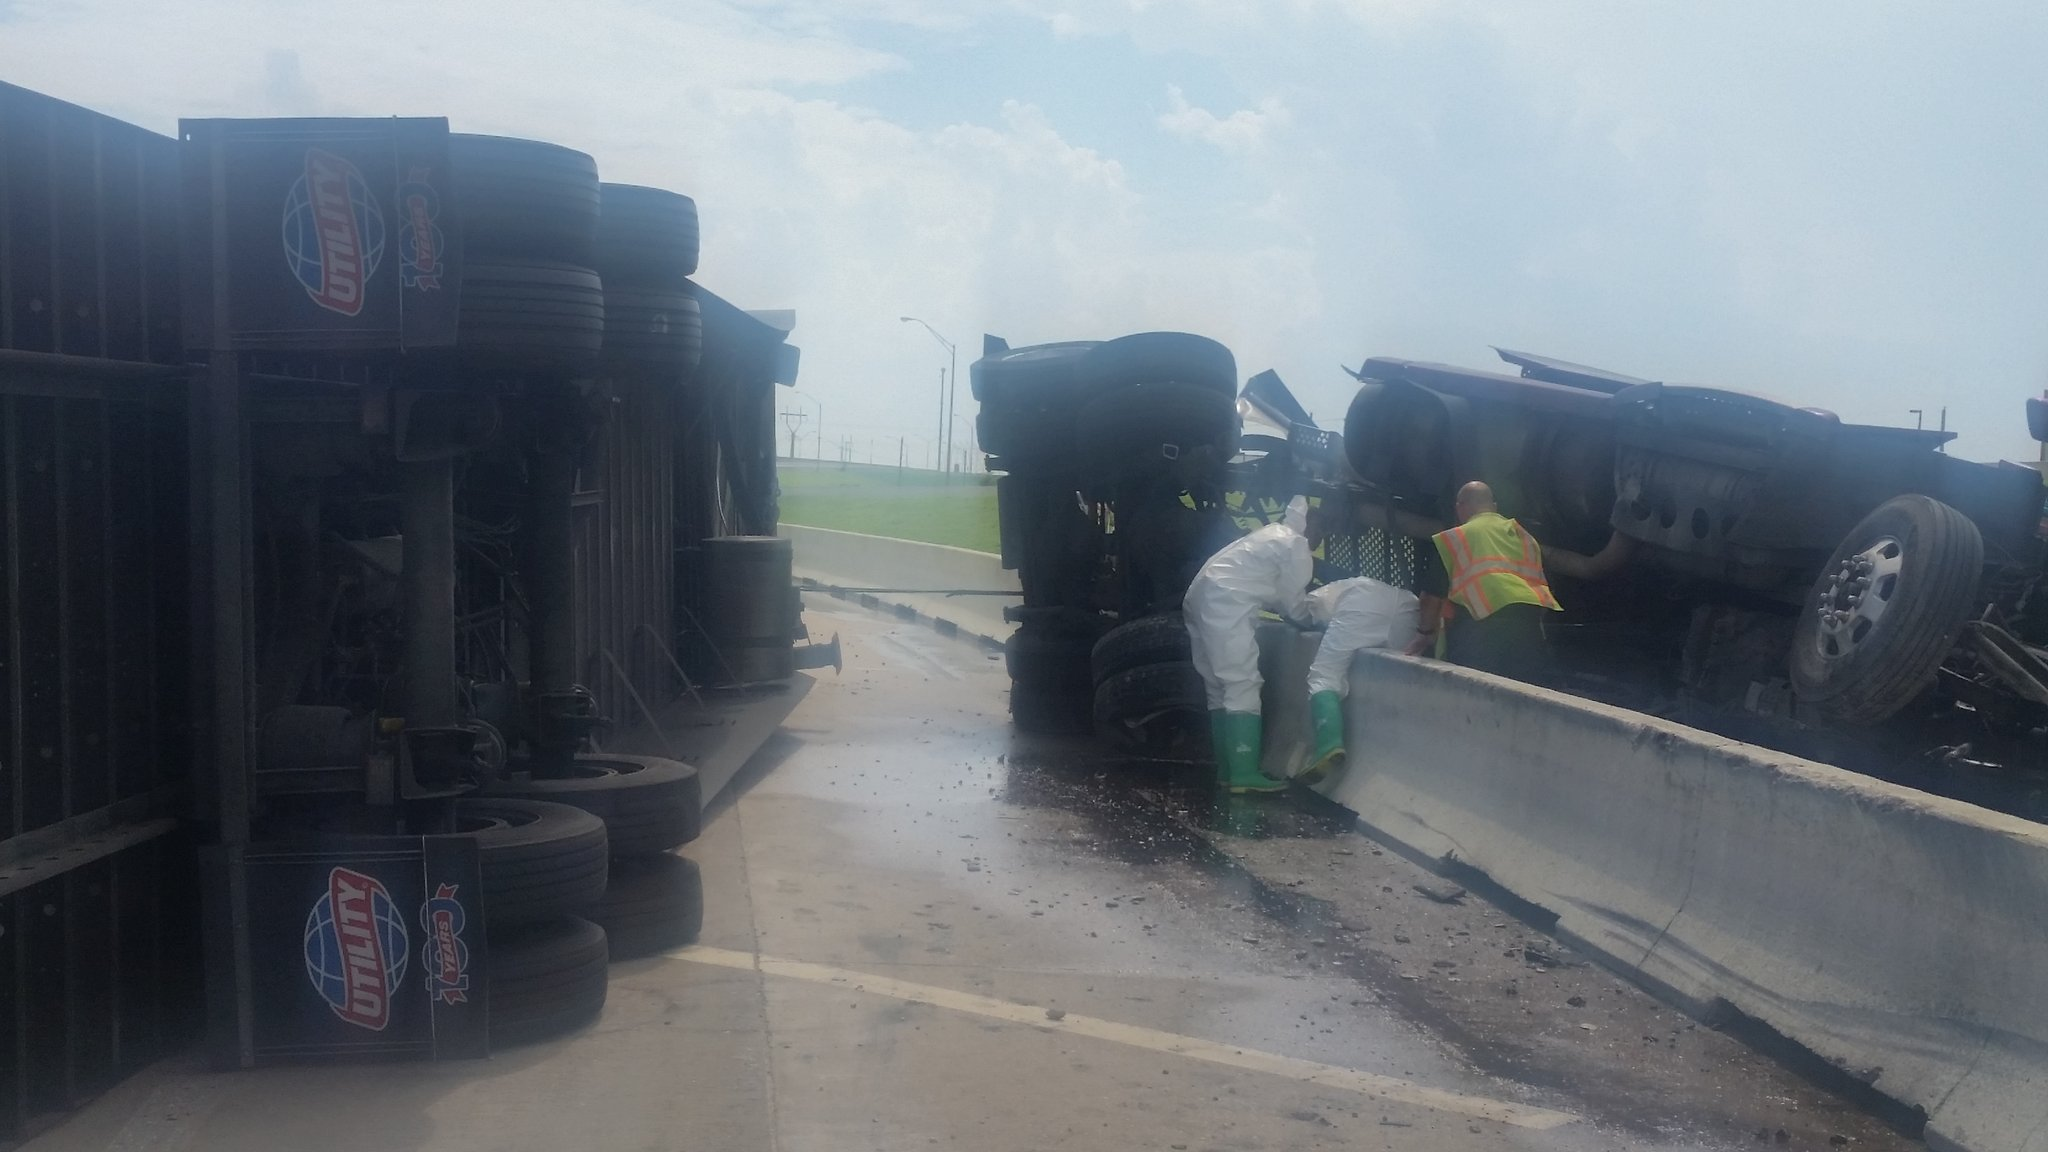 Crews work to clear the scene of a crash August 15 near downtown Oklahoma City. (Courtesy of Cpt. Paul Timmons)